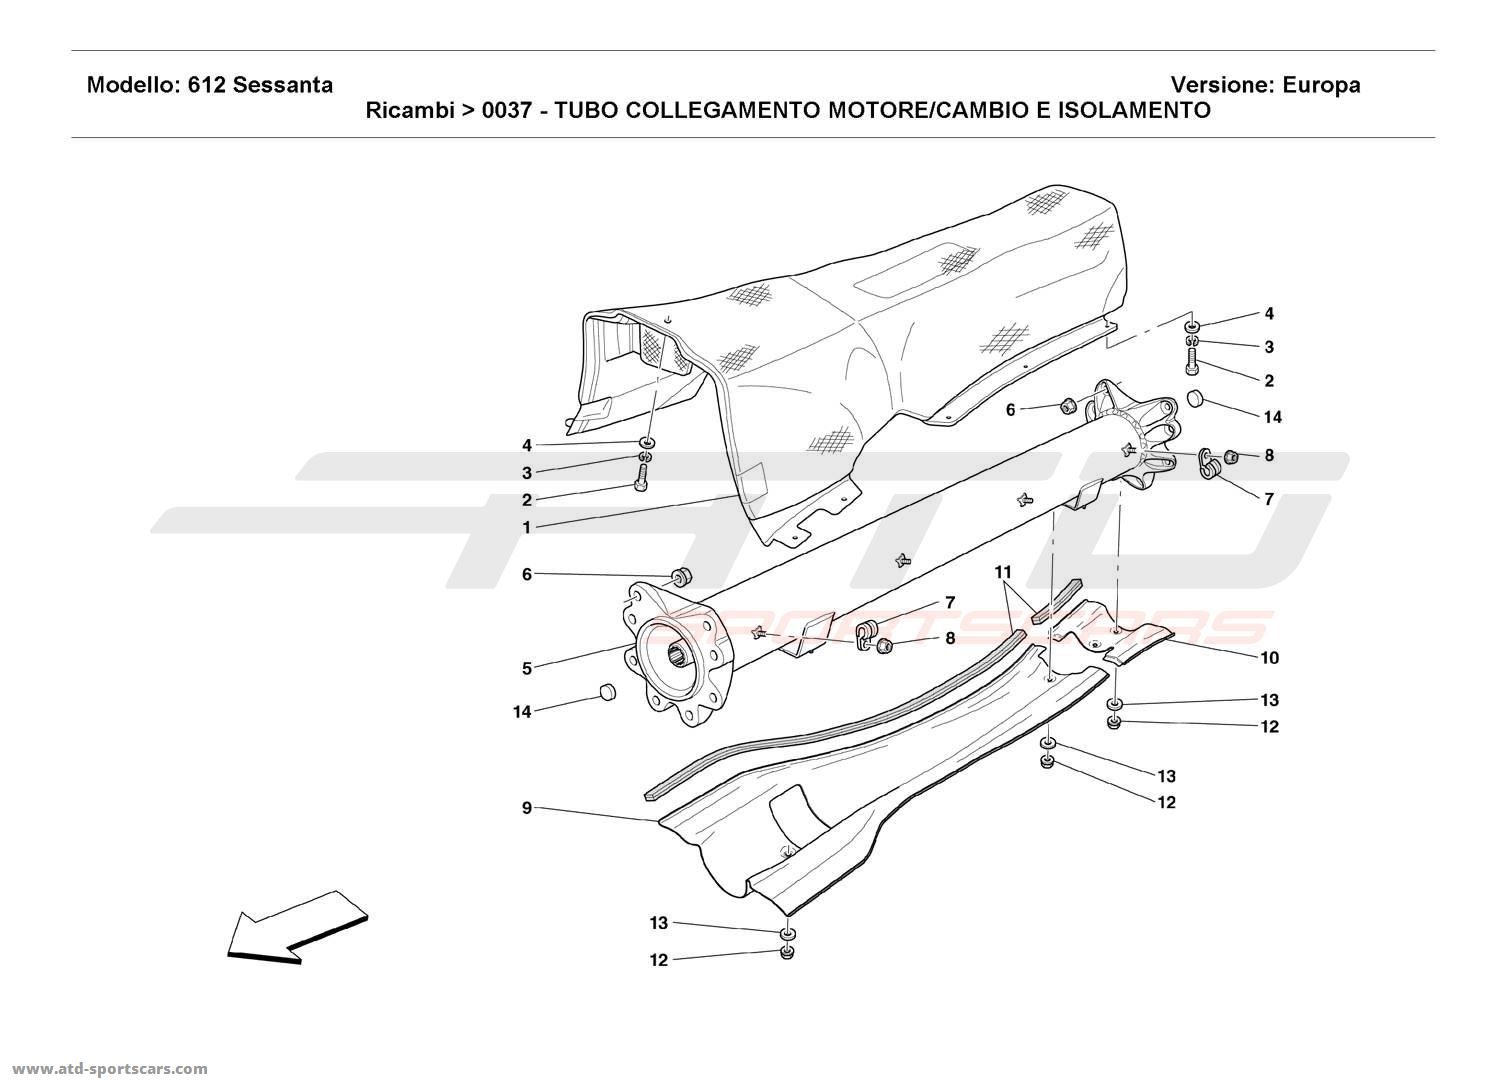 Ferrari 612 Sessanta Engine Gearbox Connecting Tube And